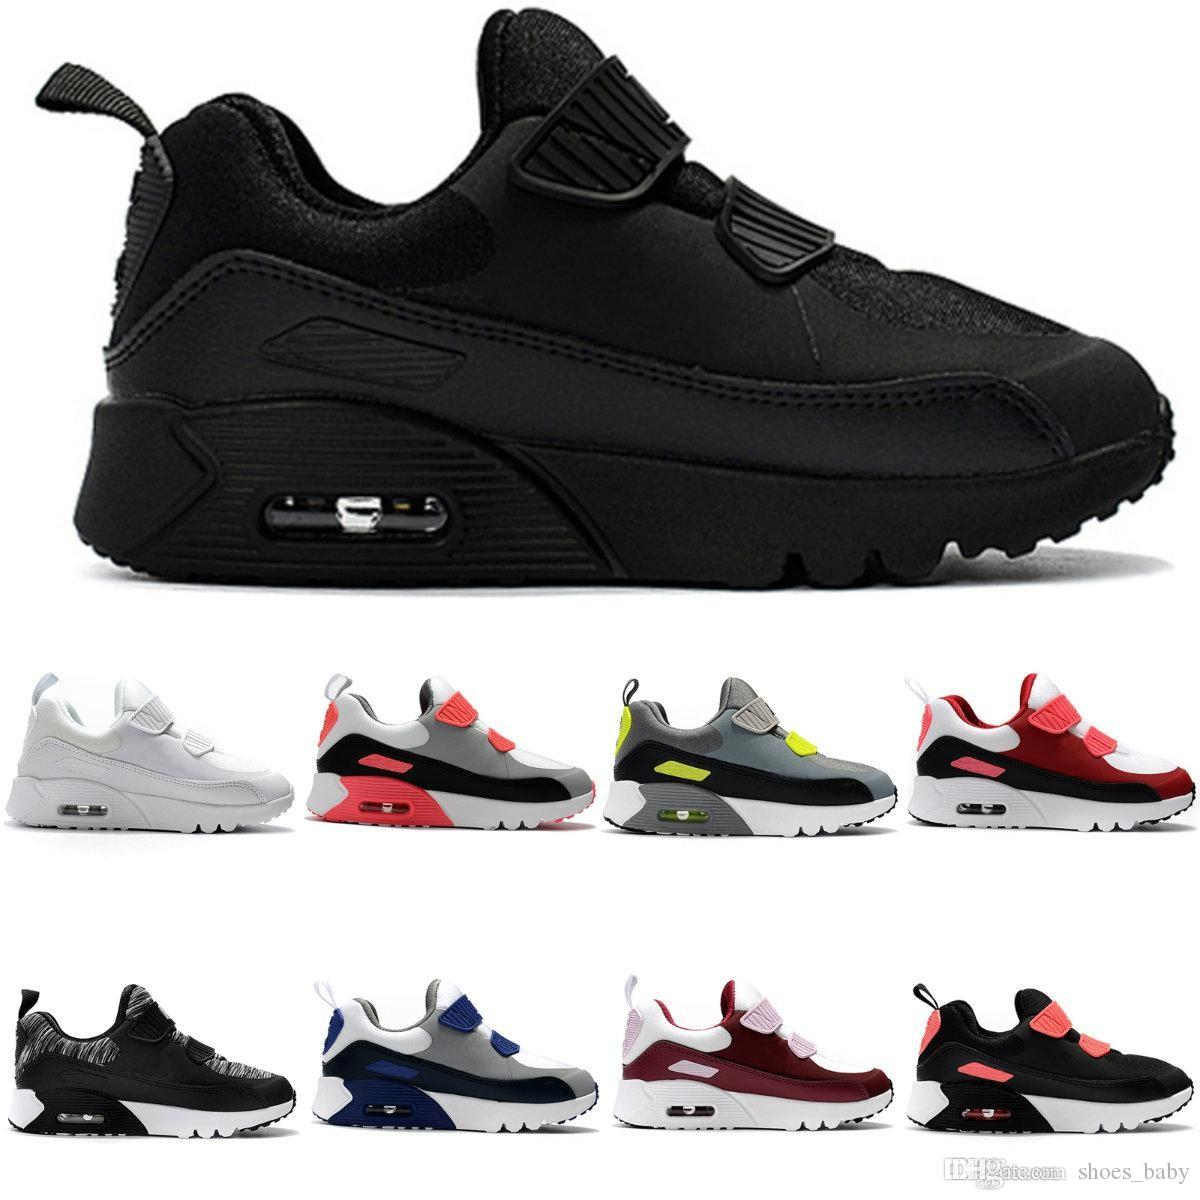 los angeles d5d69 dc946 Children S Athletic Shoes Presto 90 II Kids Running Shoes Black White Baby  Infant Sneaker Children Sports Shoes Girls Boys Youth Trainer Running Shoes  Kids ...